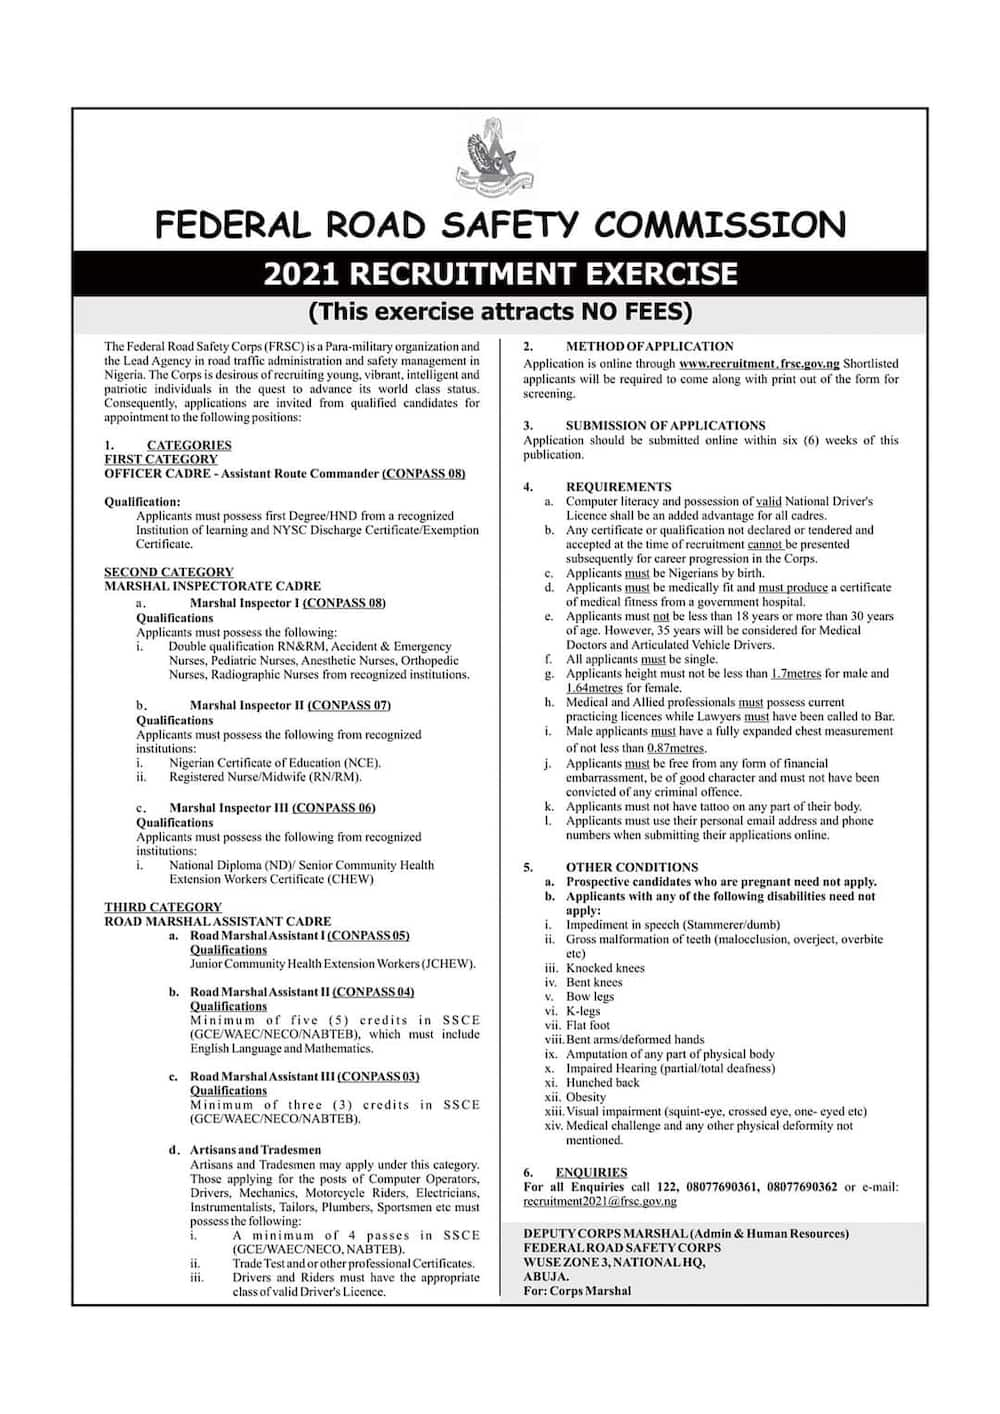 Explainer: How to Apply for Vacancies in the FRSC